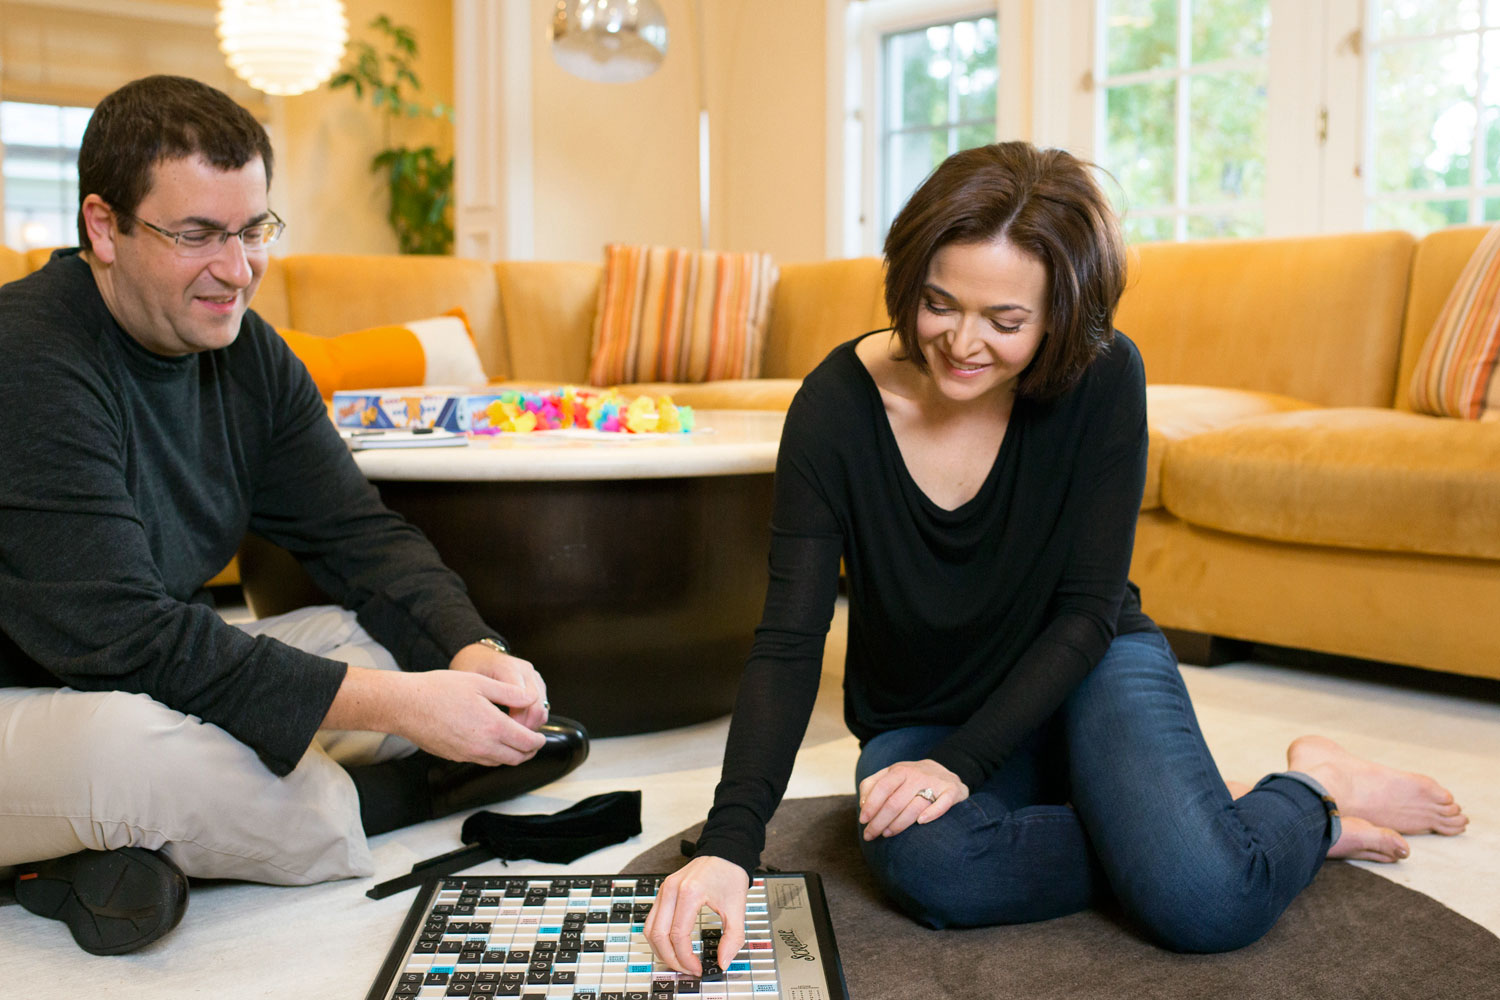 Sandberg and her husband, Dave Goldberg, at their former home in Atherton, Cali.